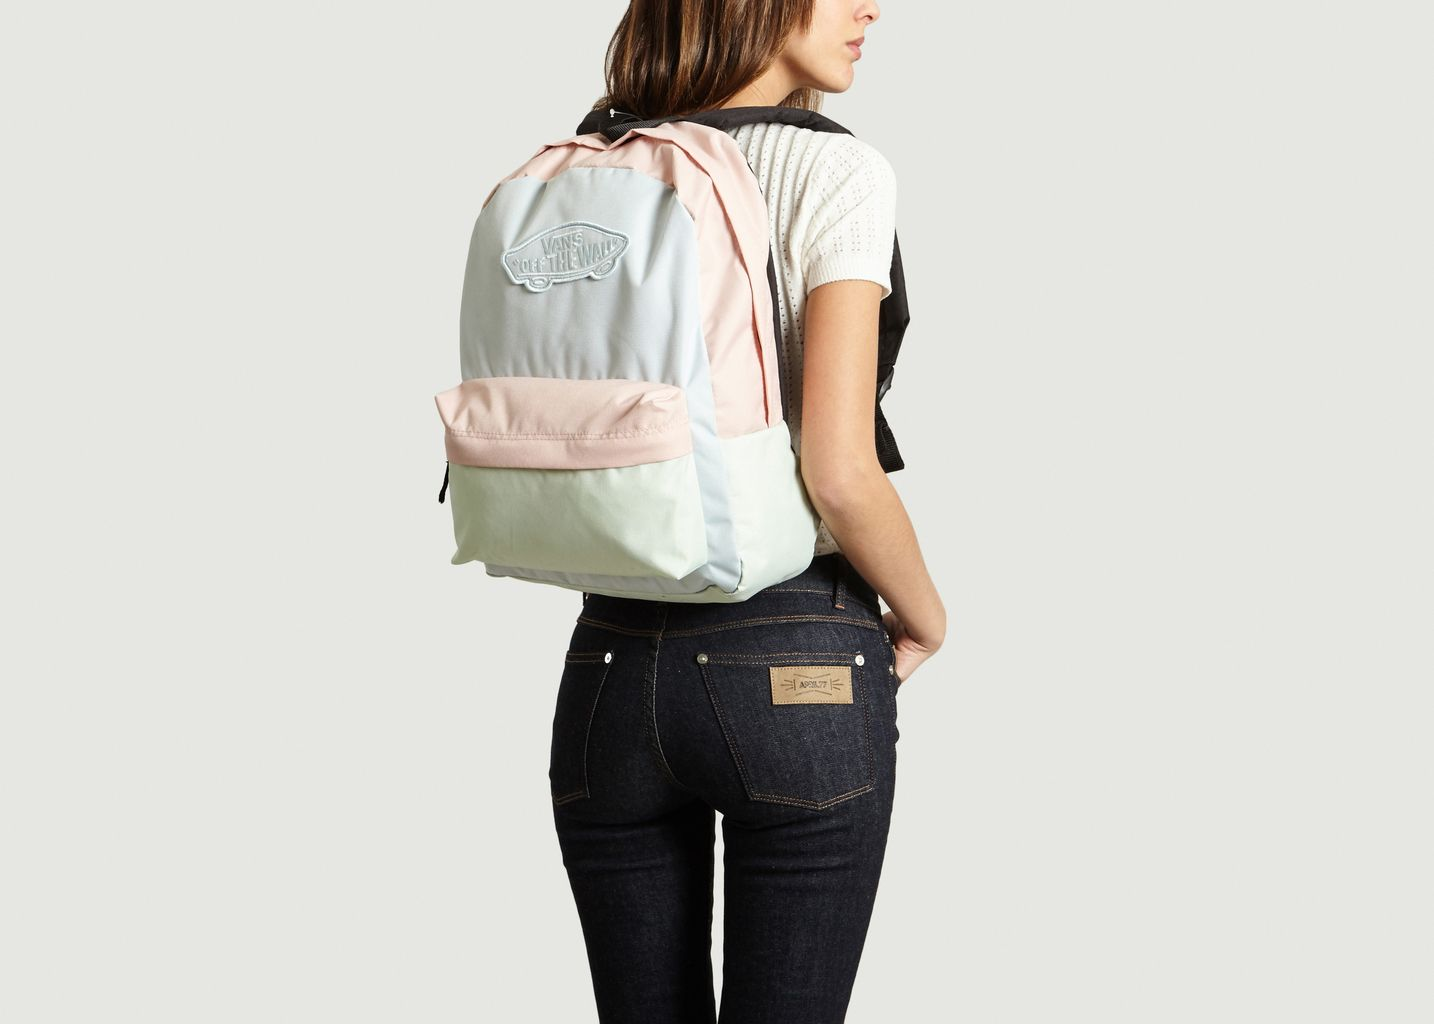 a1e24f50a3 Realm Backpack Pink Vans